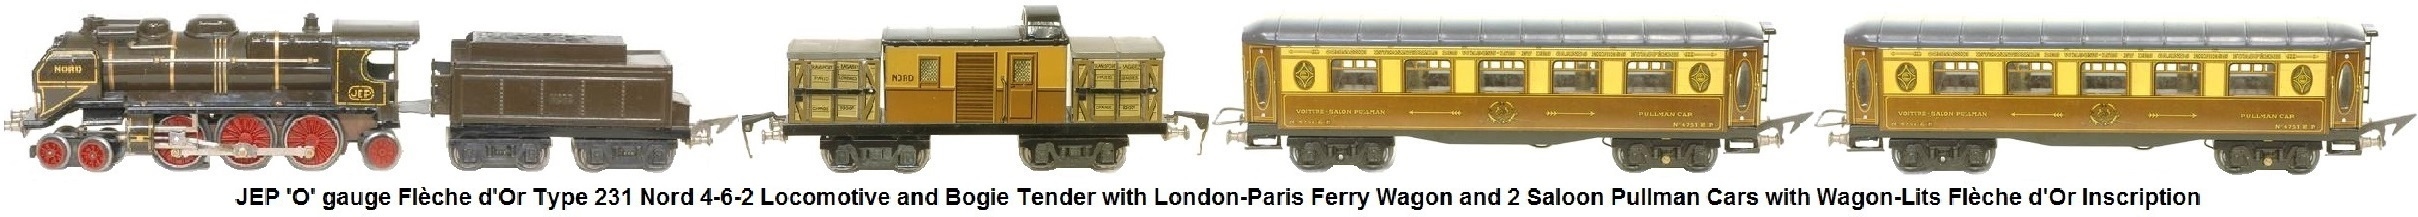 JEP 'O' gauge Nord 4-6-0 Locomotive and bogie Tender Fl�che d'Or type 231 with London-Paris Ferry Wagon and 2 Saloon Pullman Cars with Wagon-Lits Fl�che d'Or inscription circa 1935